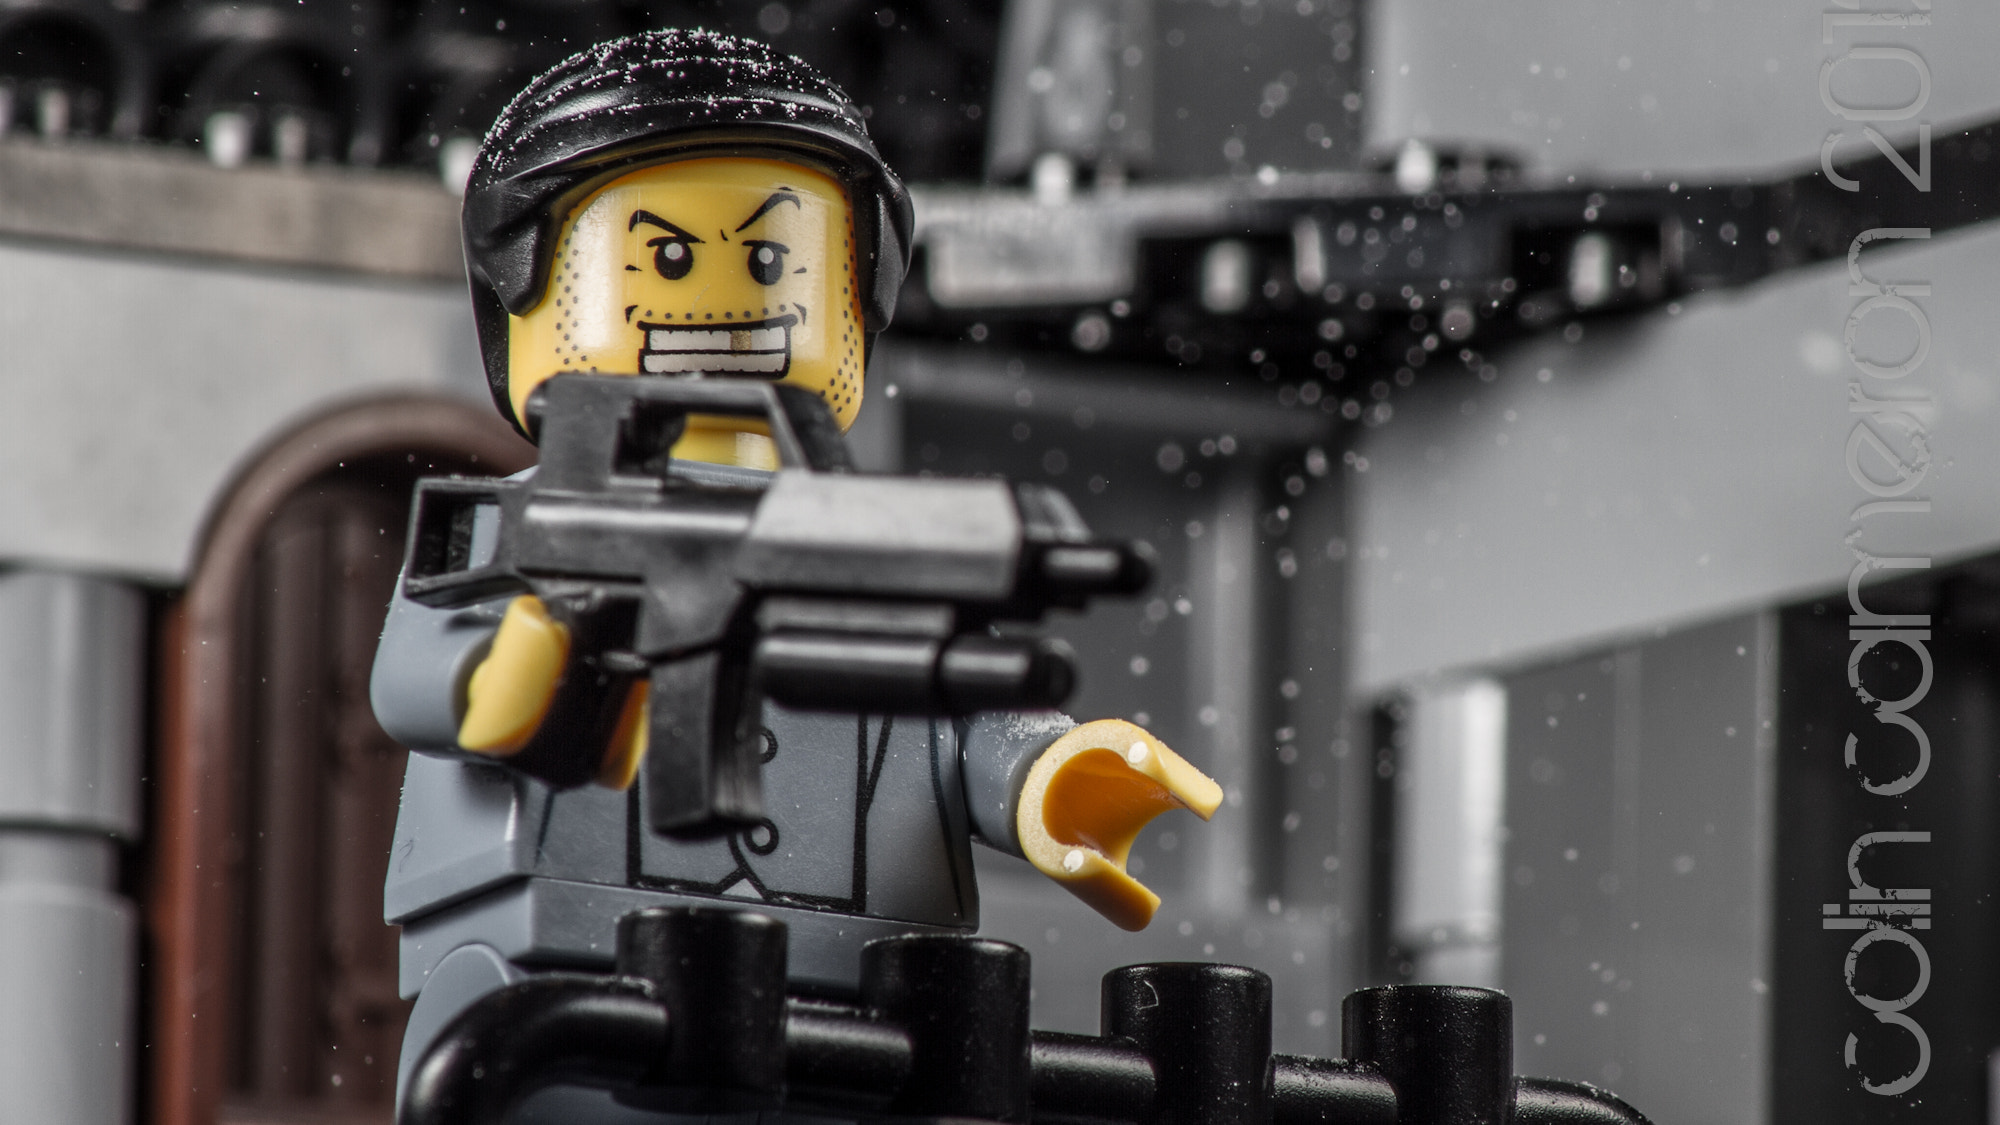 Photograph Lego Scarface - Say hello to my Lego friend by Colin Cameron on 500px